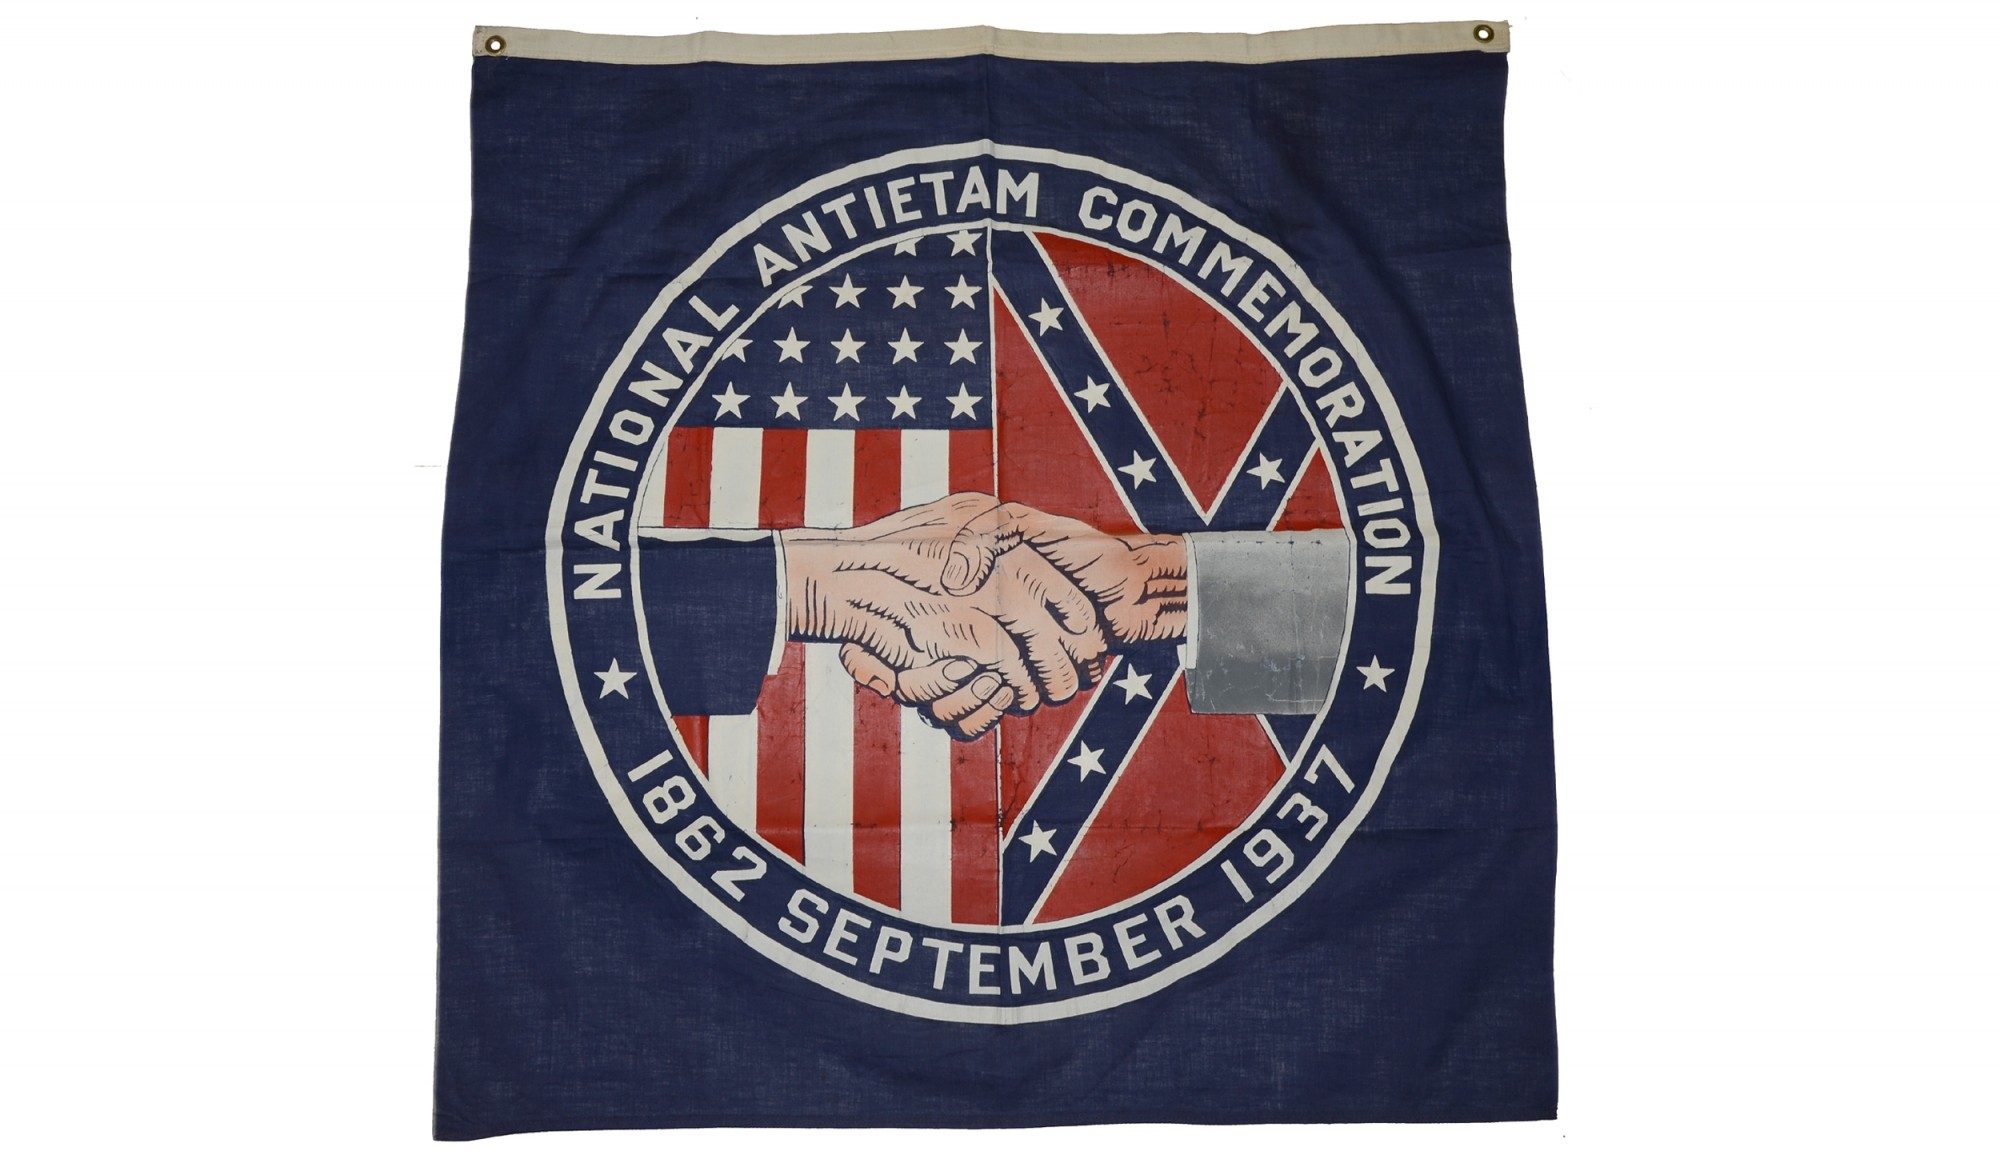 WONDERFUL LARGE BANNER FROM THE NATIONAL ANTIETAM CELEBRATION OF 1937